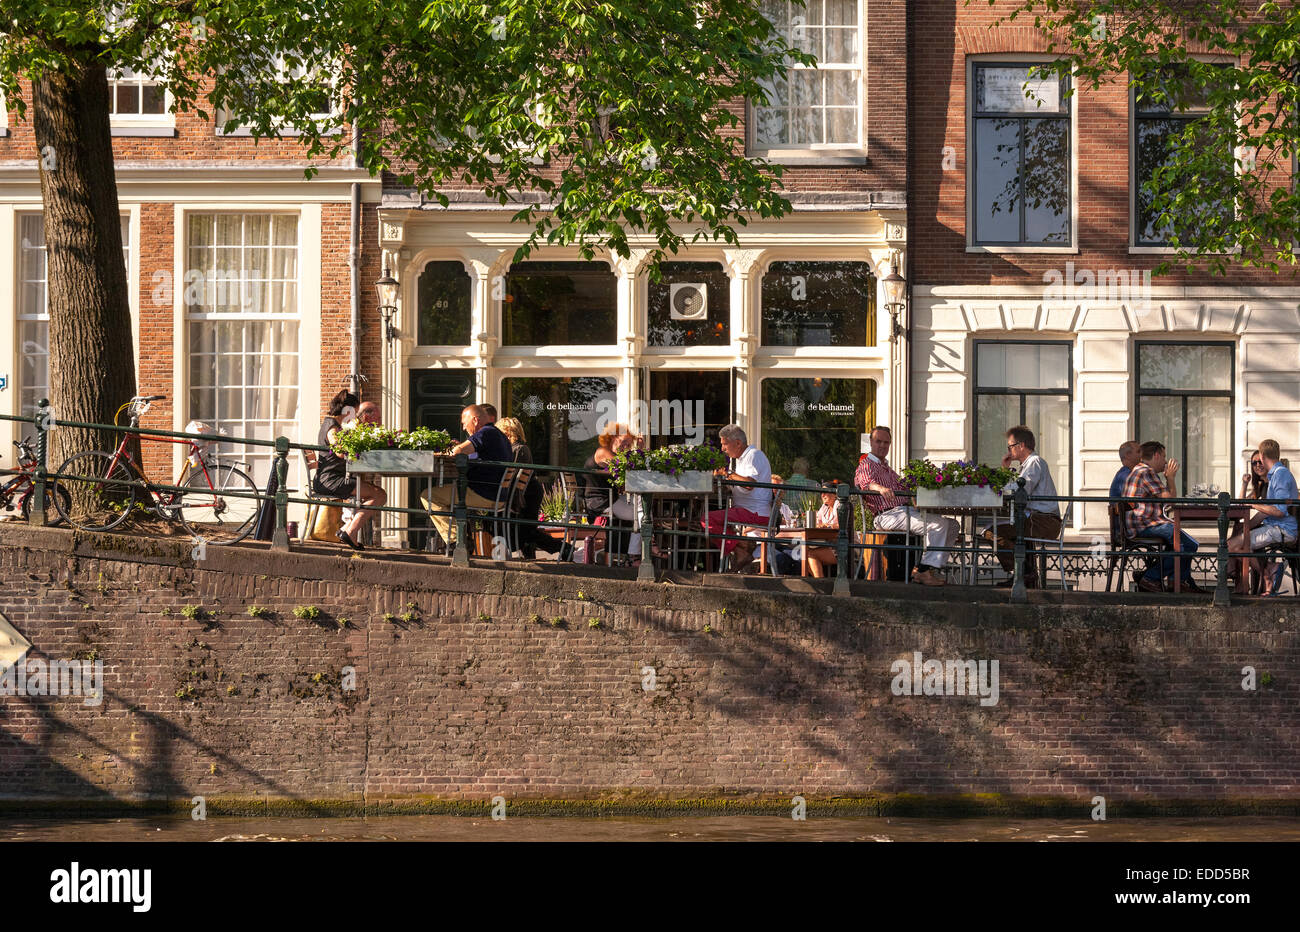 Restaurant De Belhamel on the Brouwersgracht Canal alfresco dining outdoor terrace overlooking the Herengracht Amsterdam - Stock Image